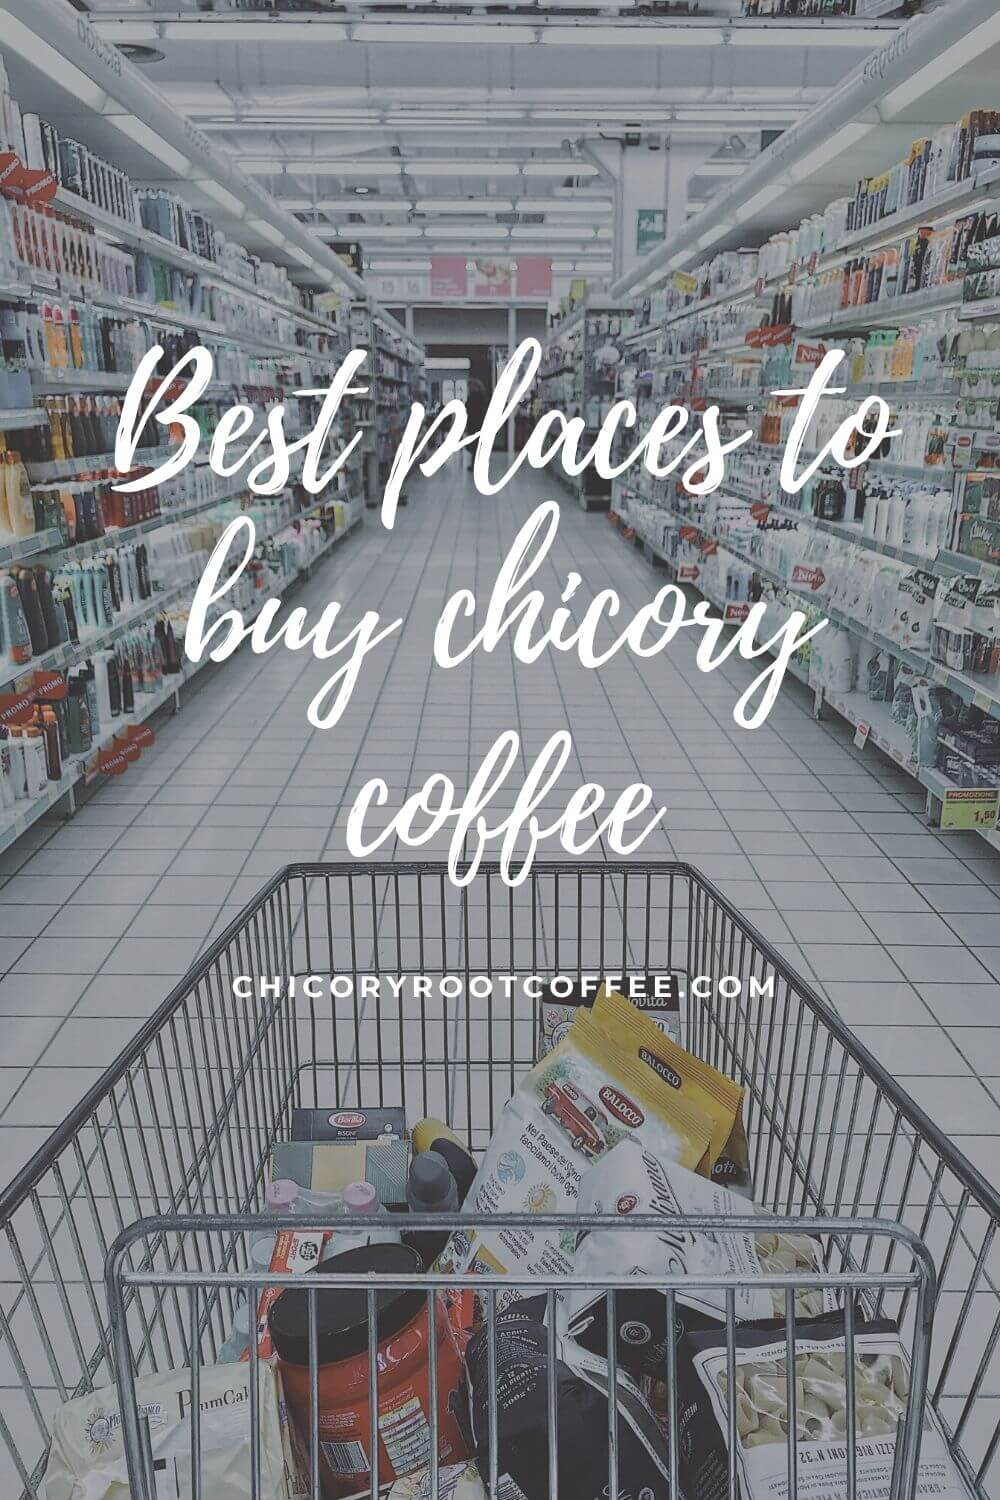 best places to buy chicory coffee